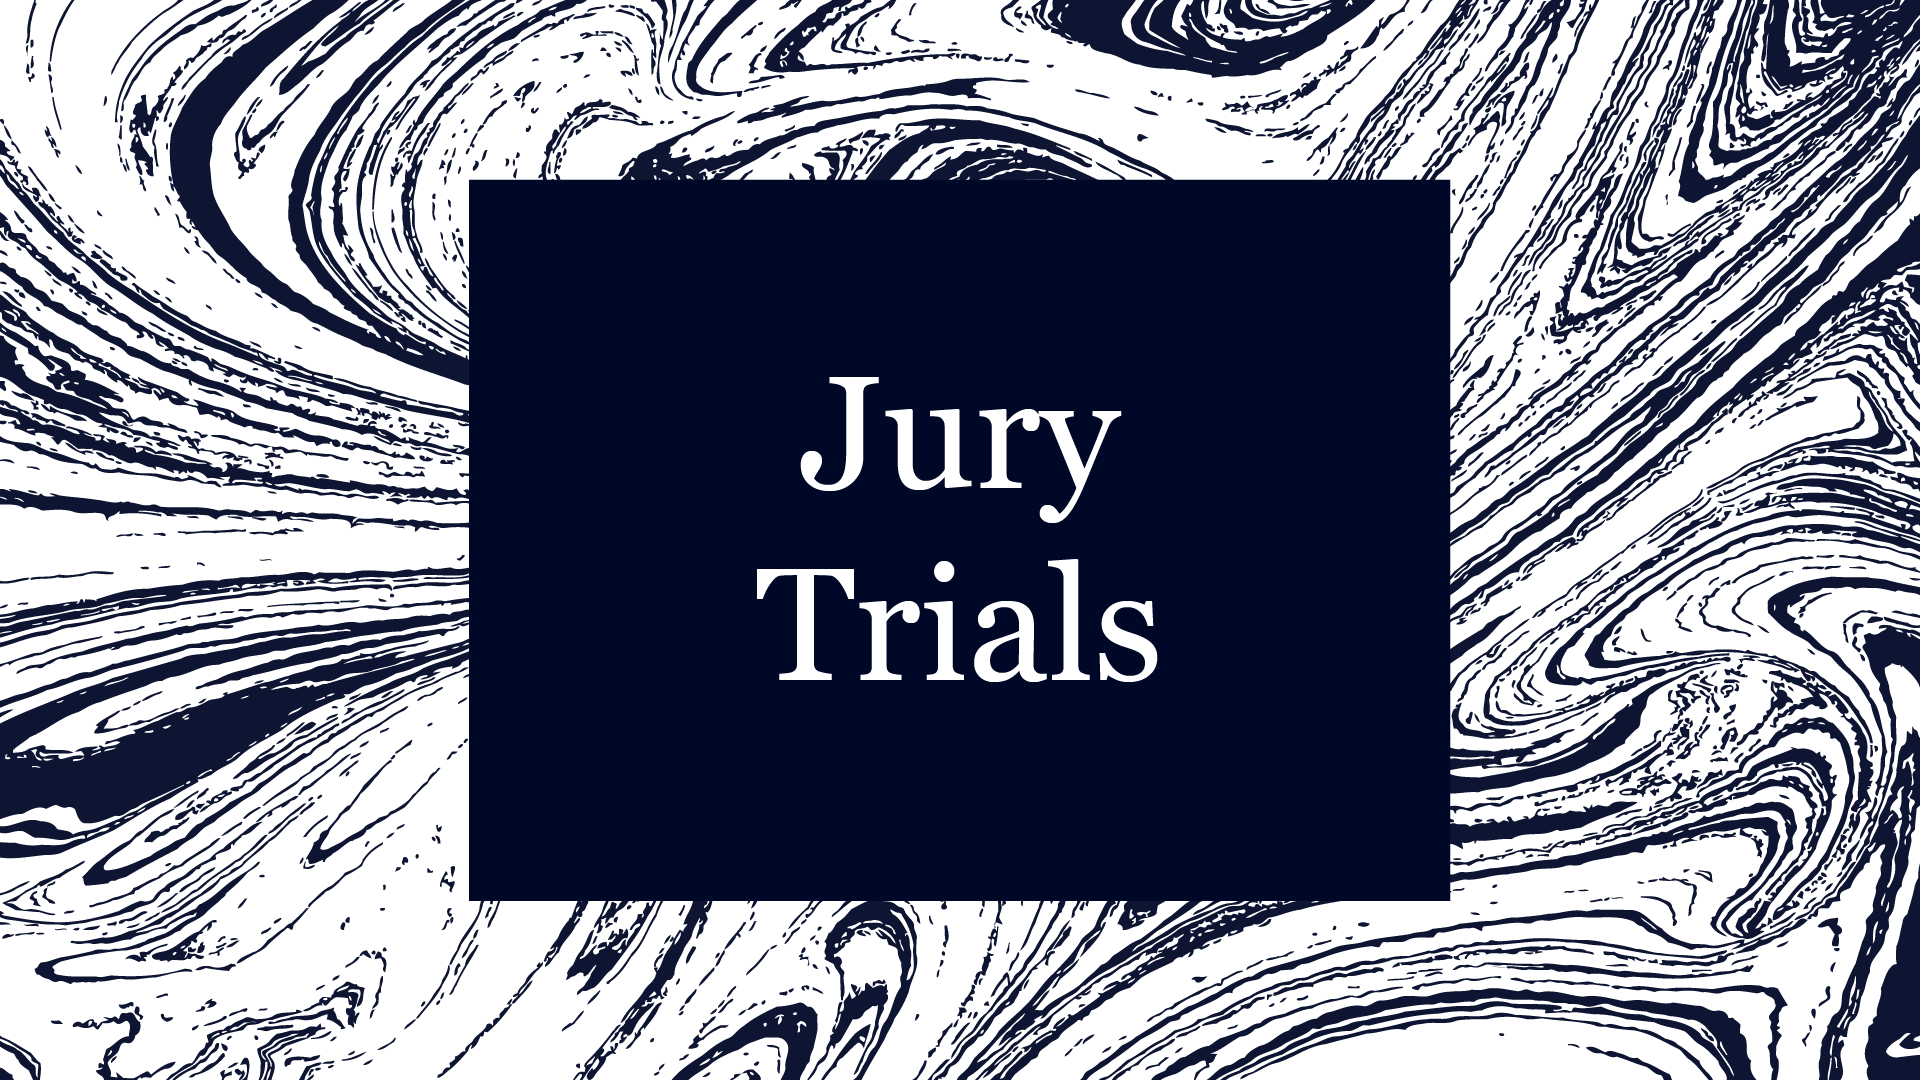 Jury Trials Tile